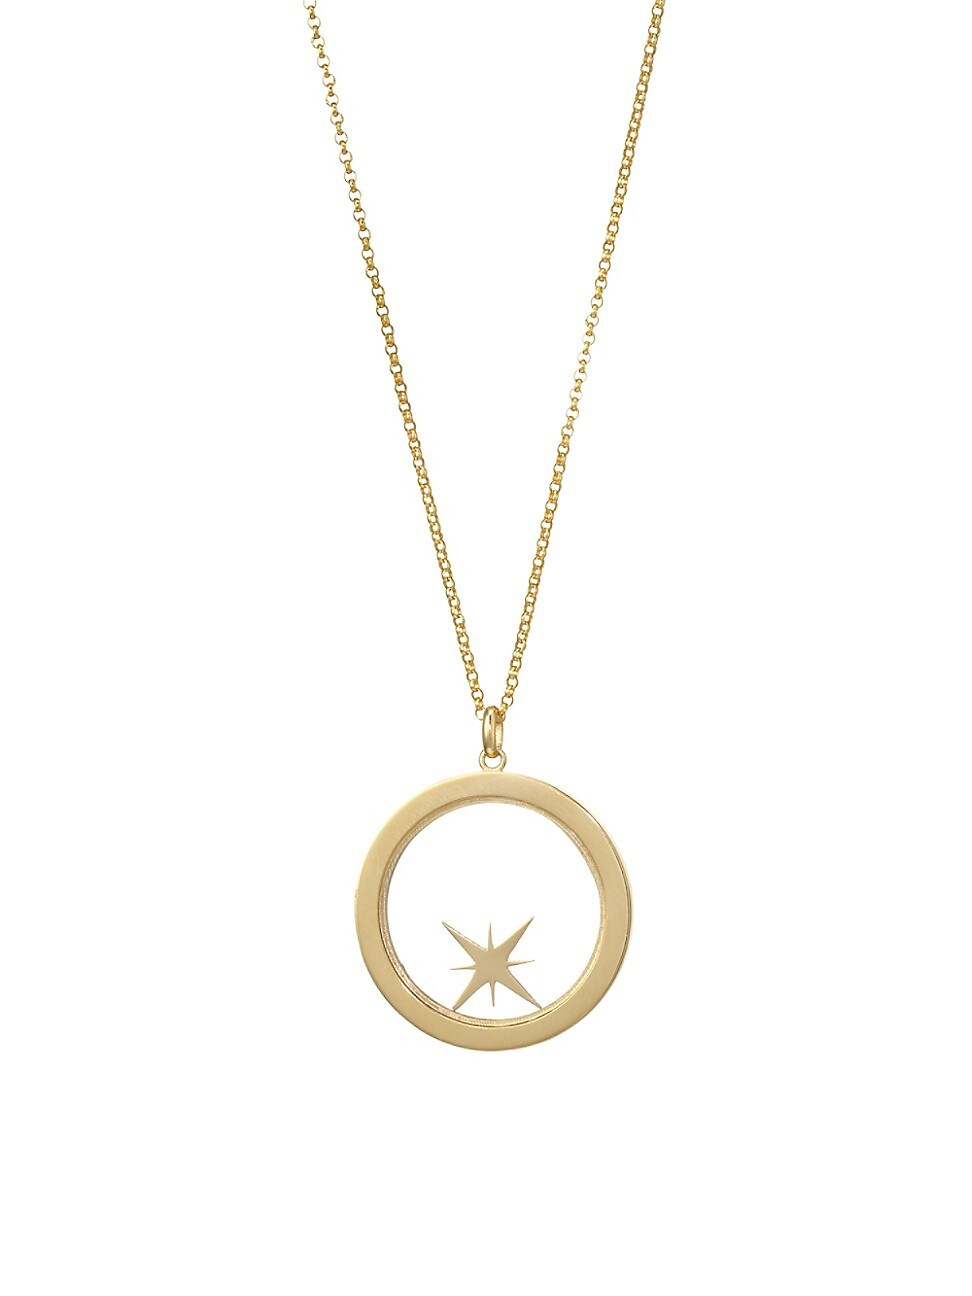 Bare WOMEN'S CHAMPLEVÉ 14K YELLOW GOLD COMPASS SHAKER PENDANT NECKLACE